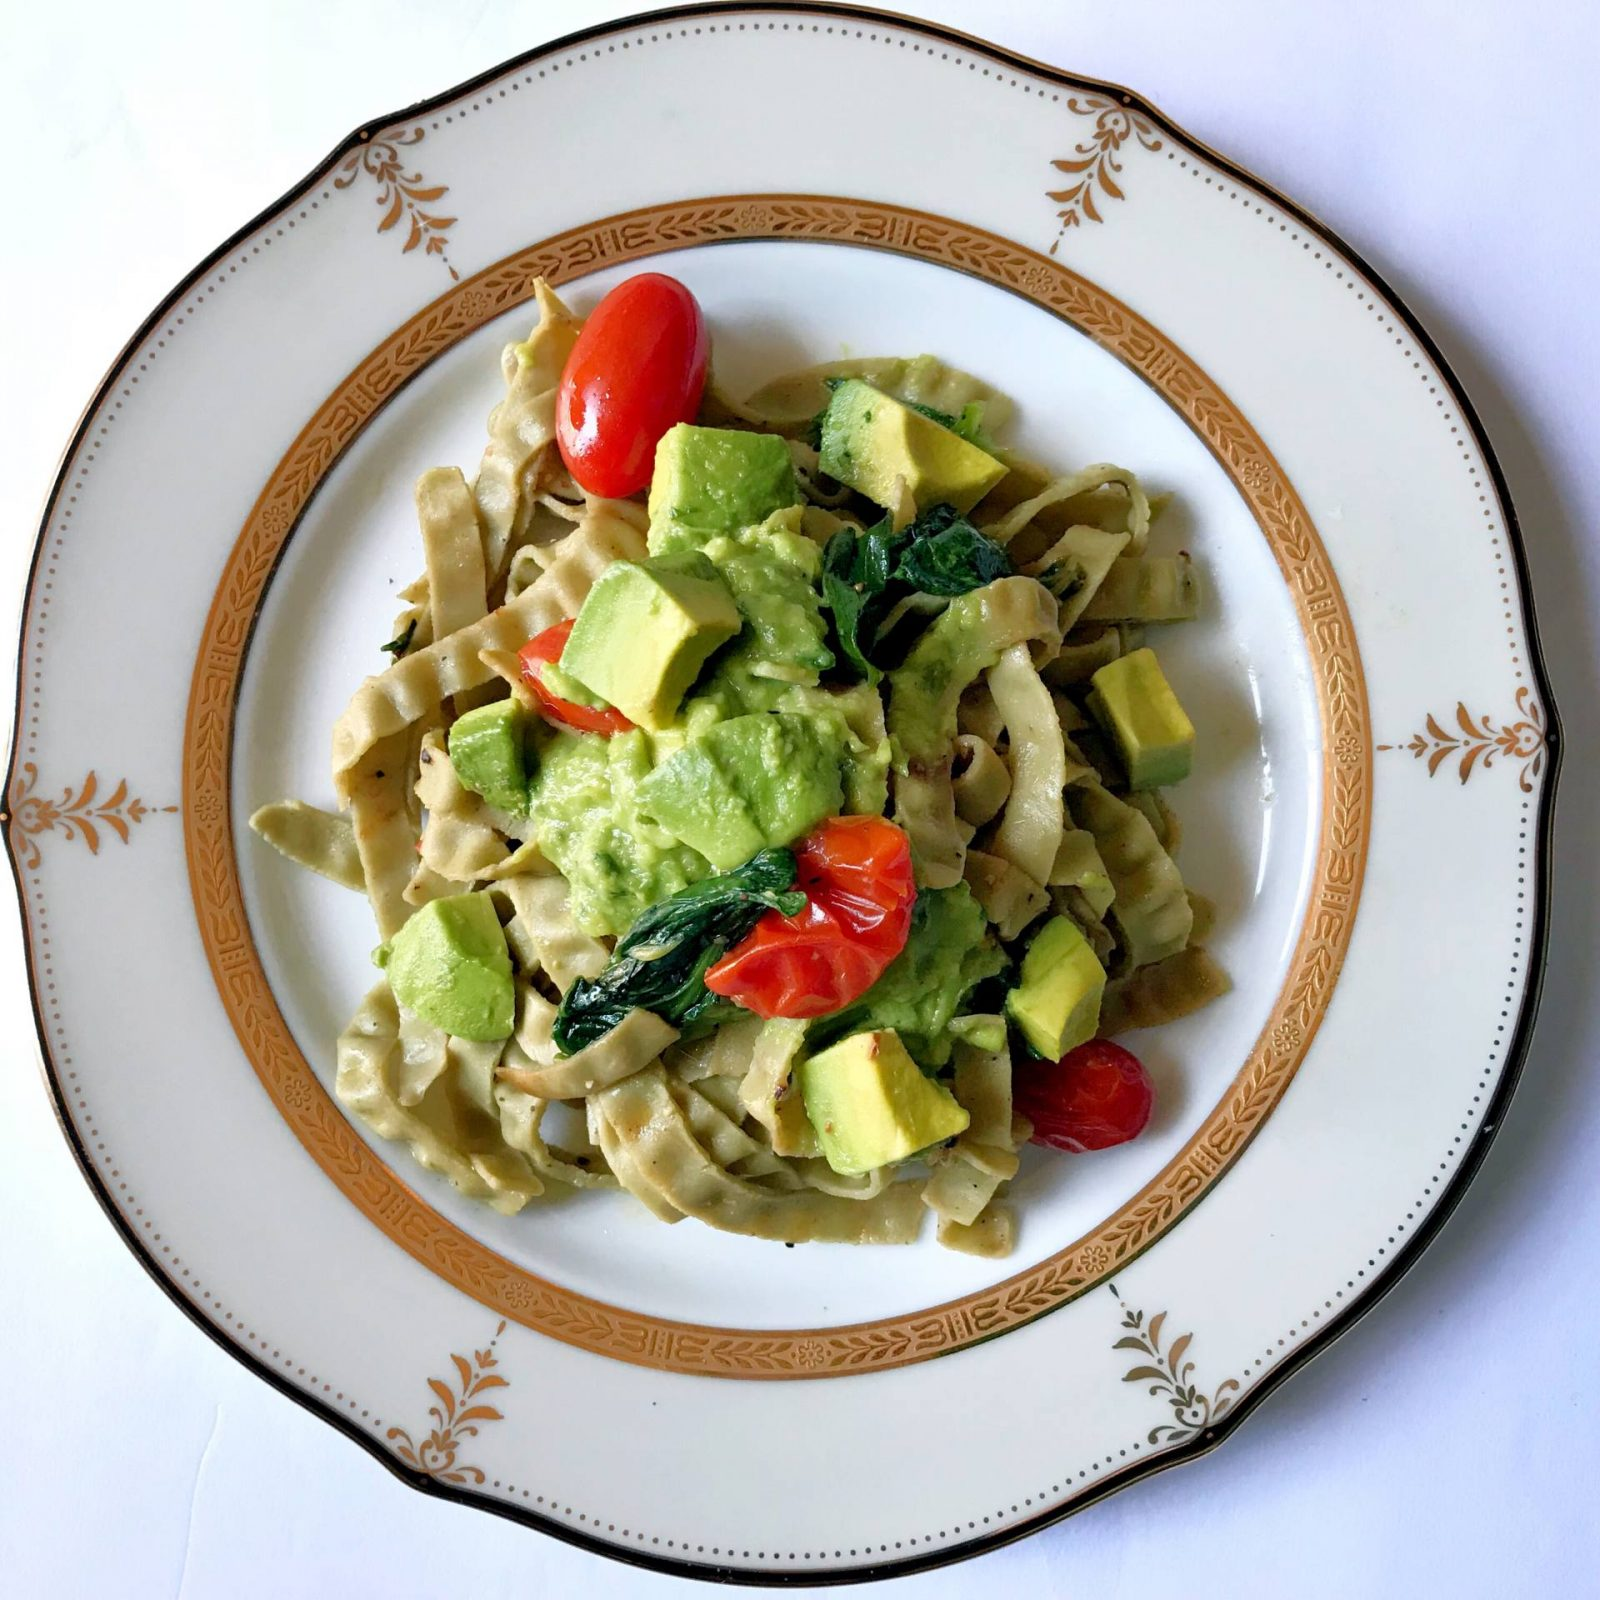 Weekend Recipes: Organic Edamame & Mung Bean Fettuccine with Avocado Sauce